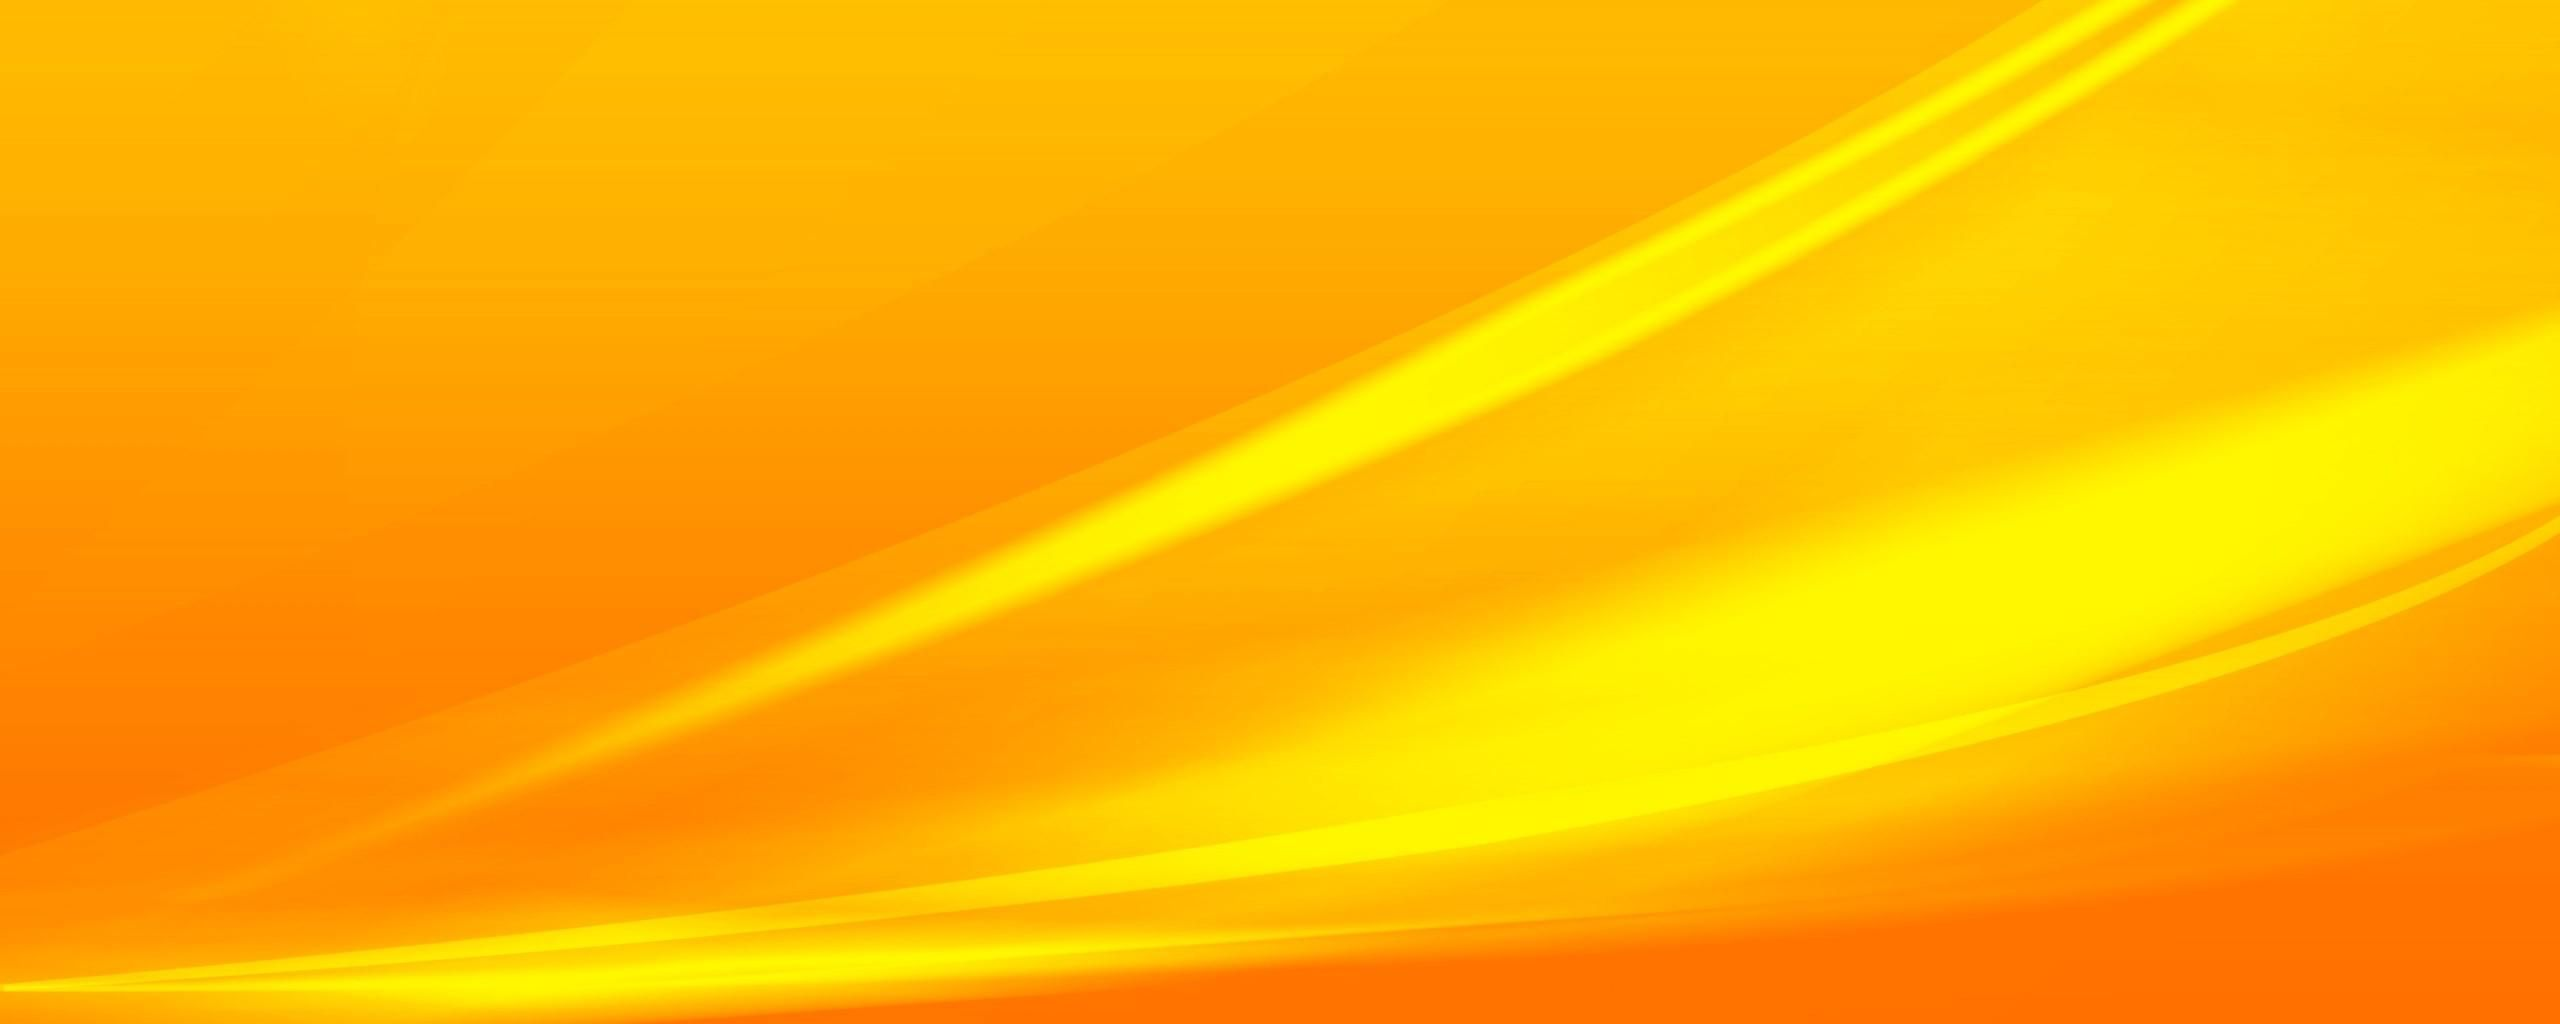 yellow background 1600×1200 Yellow Abstract Wallpapers (46 ...